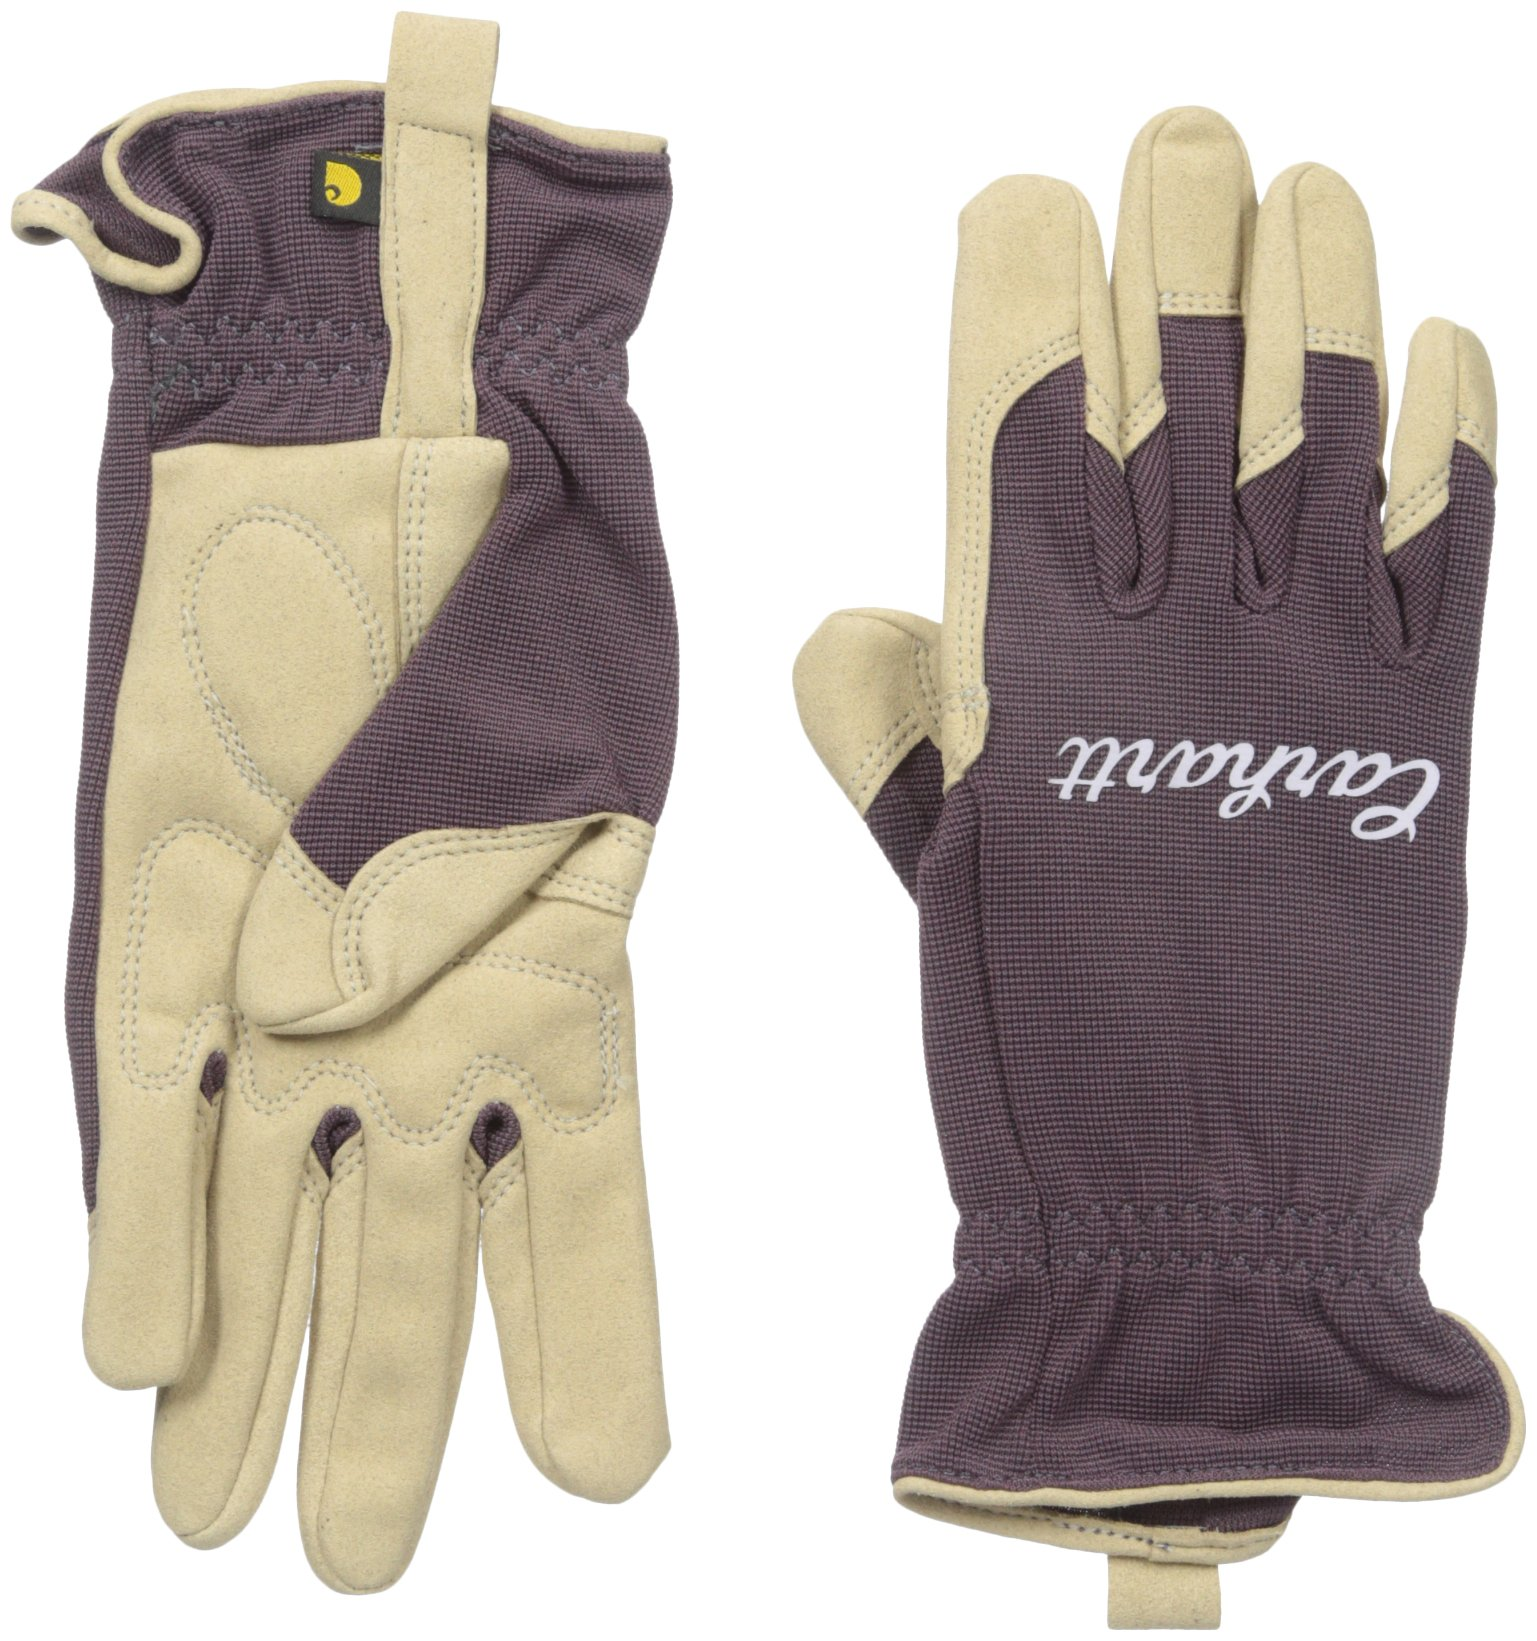 Carhartt Women's Perennial High Dexterity Glove, Dusty Plum, Medium